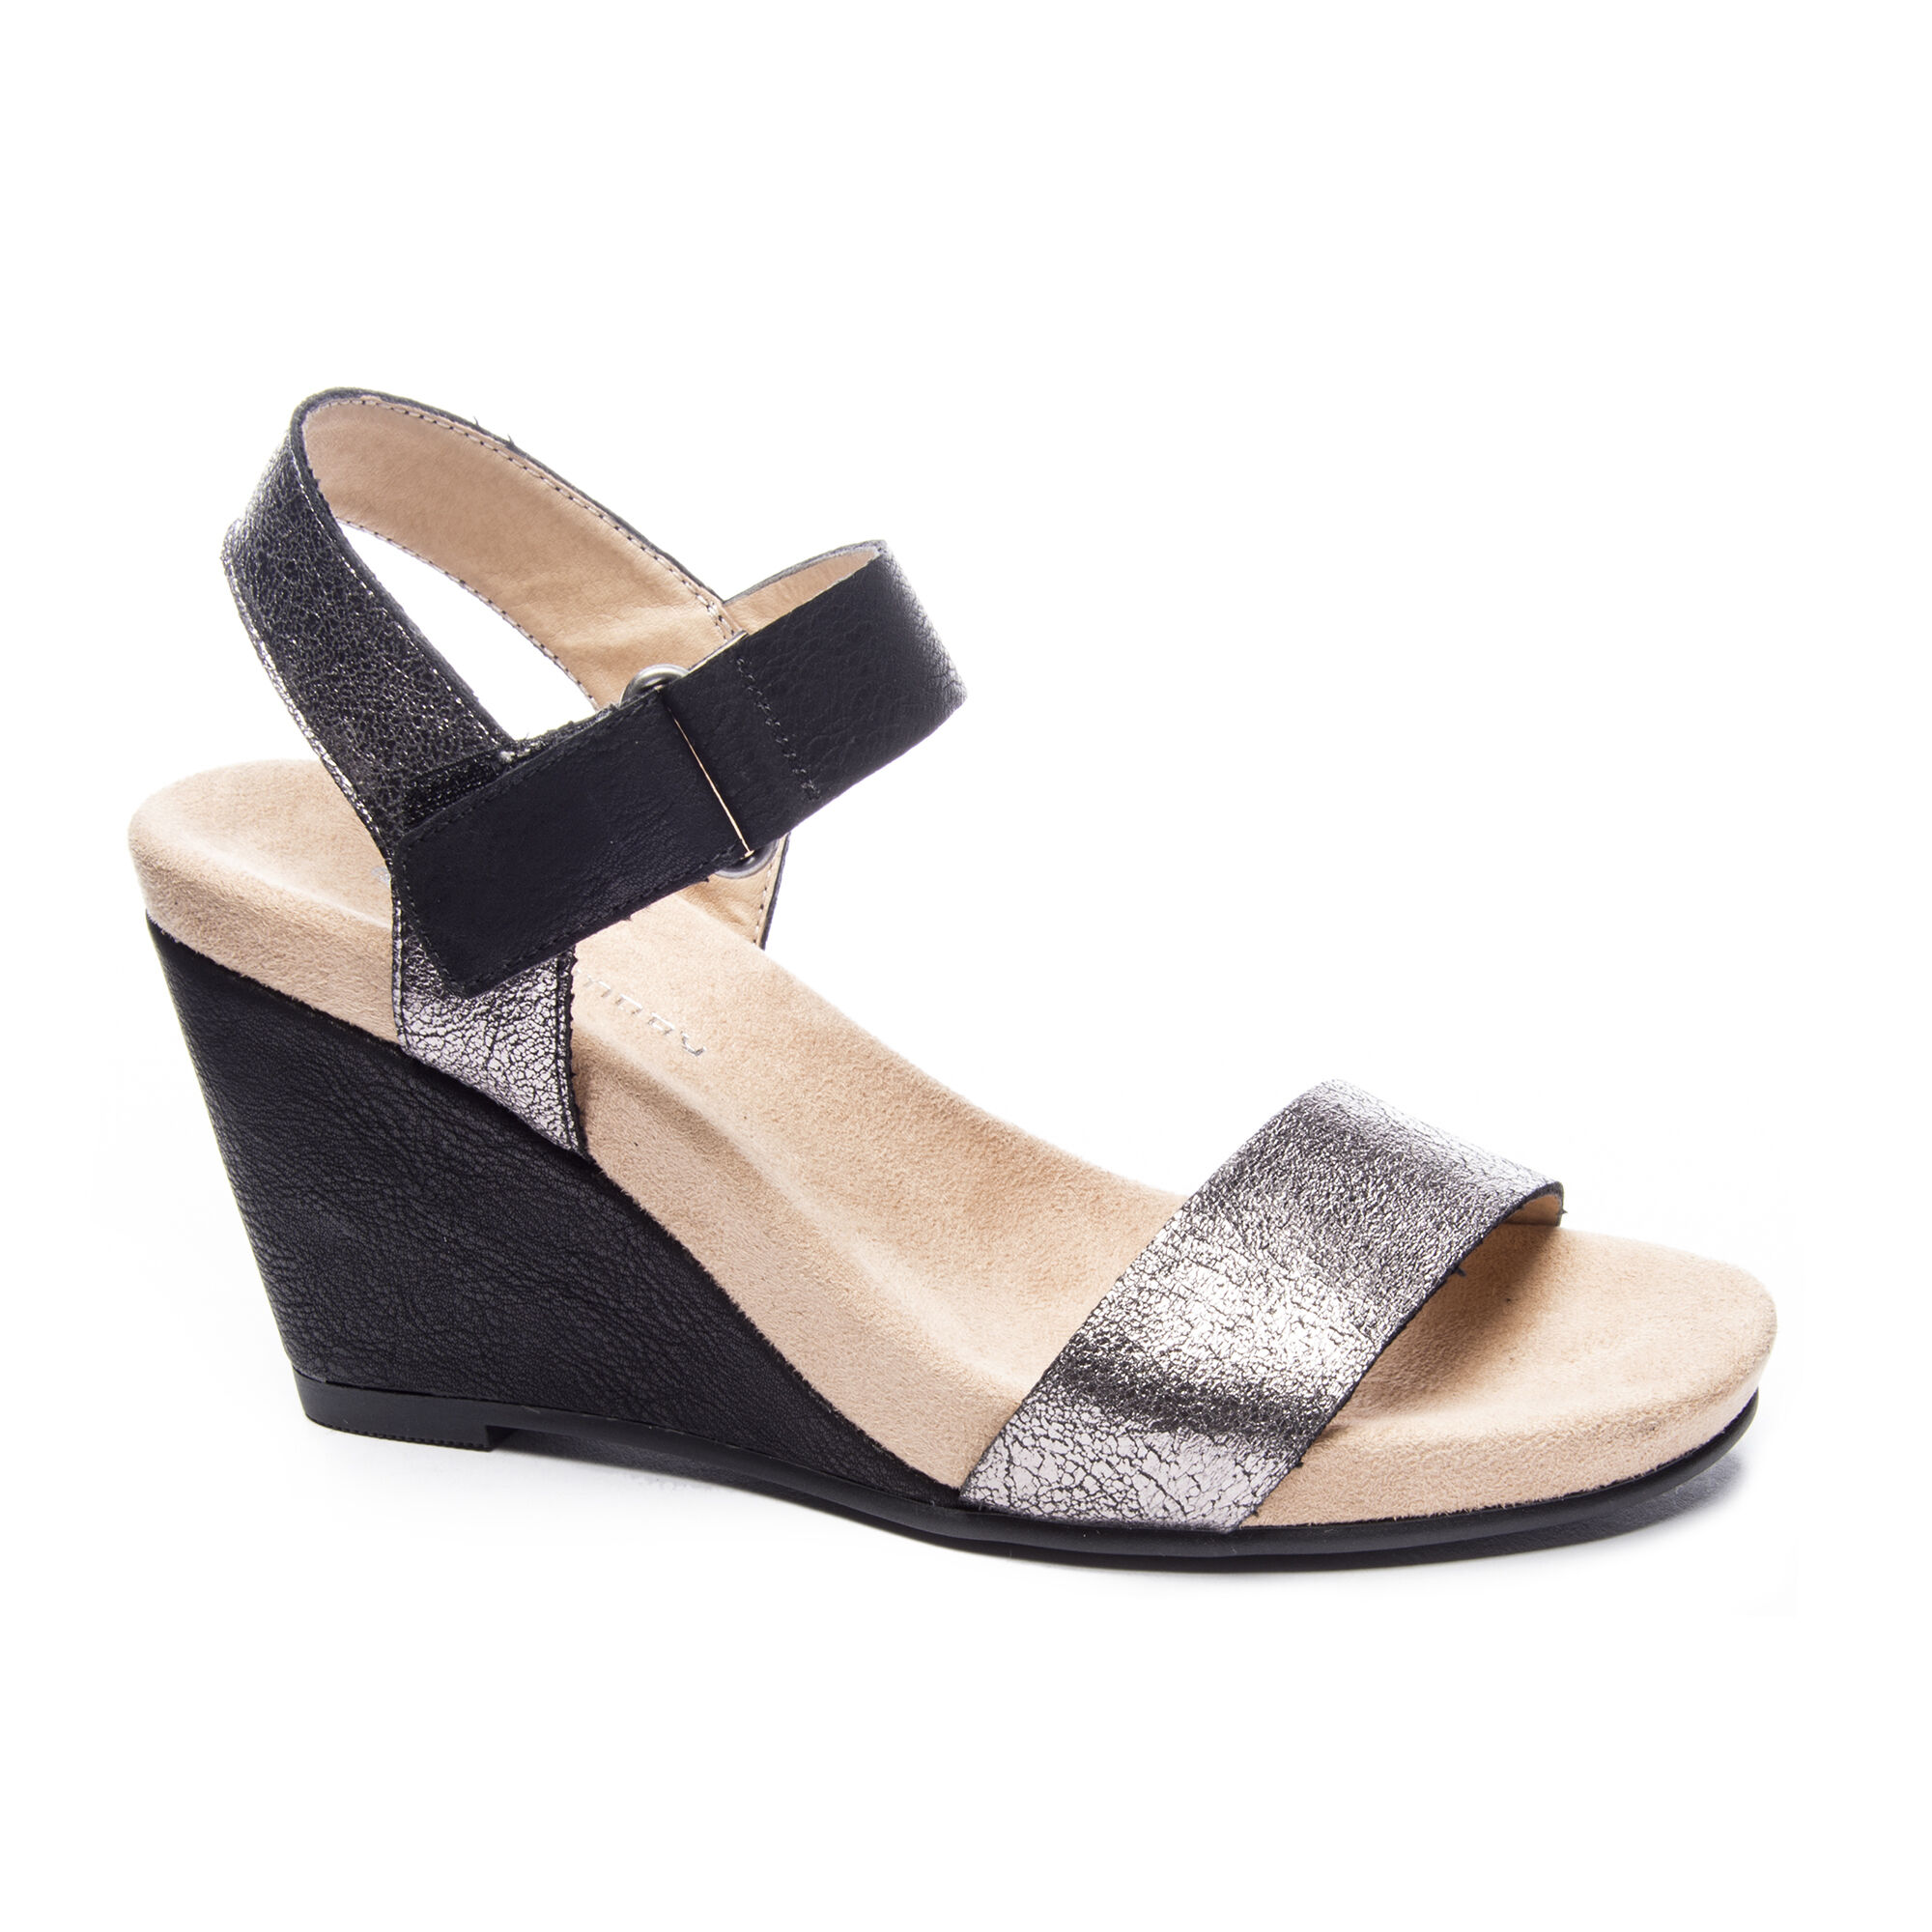 49f22e584769 CL by Laundry Trudy Shimmer-Roc Wedge Sandal